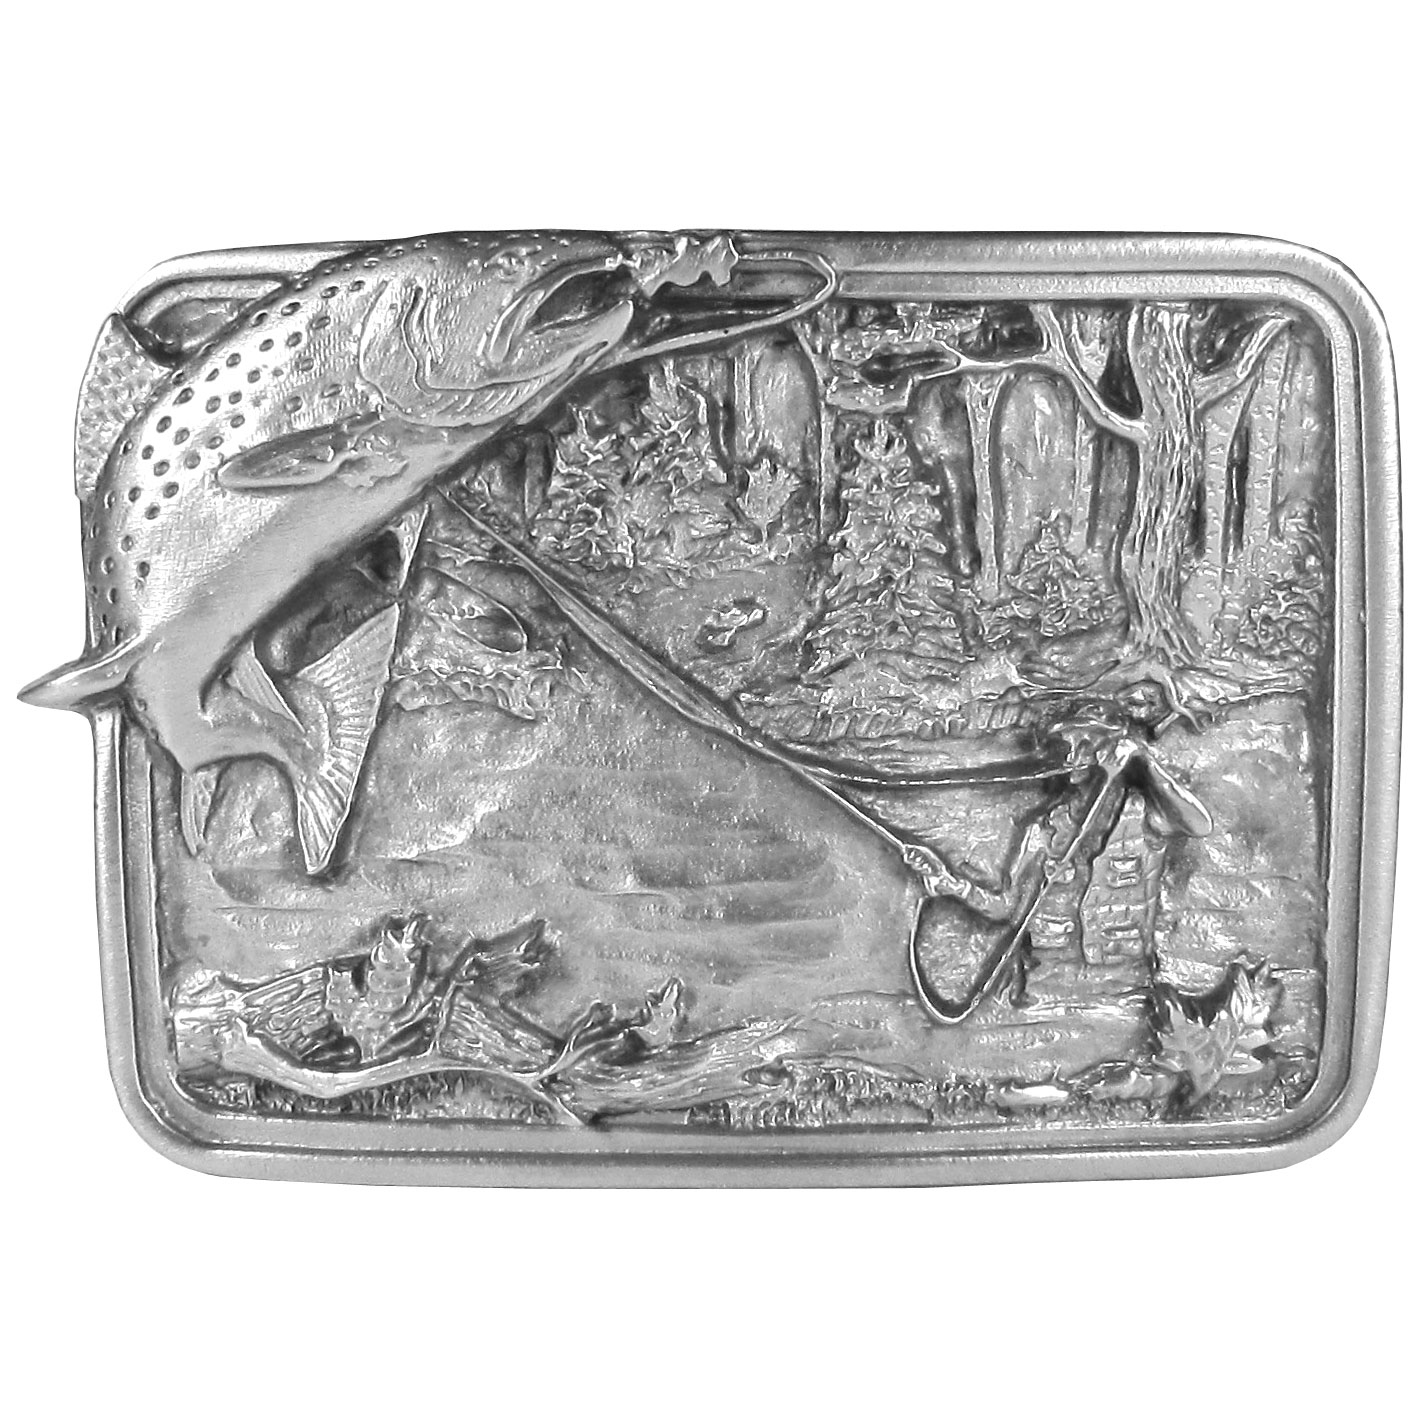 Fishing Antiqued Belt Buckle - This belt buckle celebrates fly fishing. It features a fish hooked on a rod held by a fisherman, who is in a river. Trees and plants surround the scene. Siskiyou's unique buckle designs often become collectors items and are unequaled with the best craftsmanship.